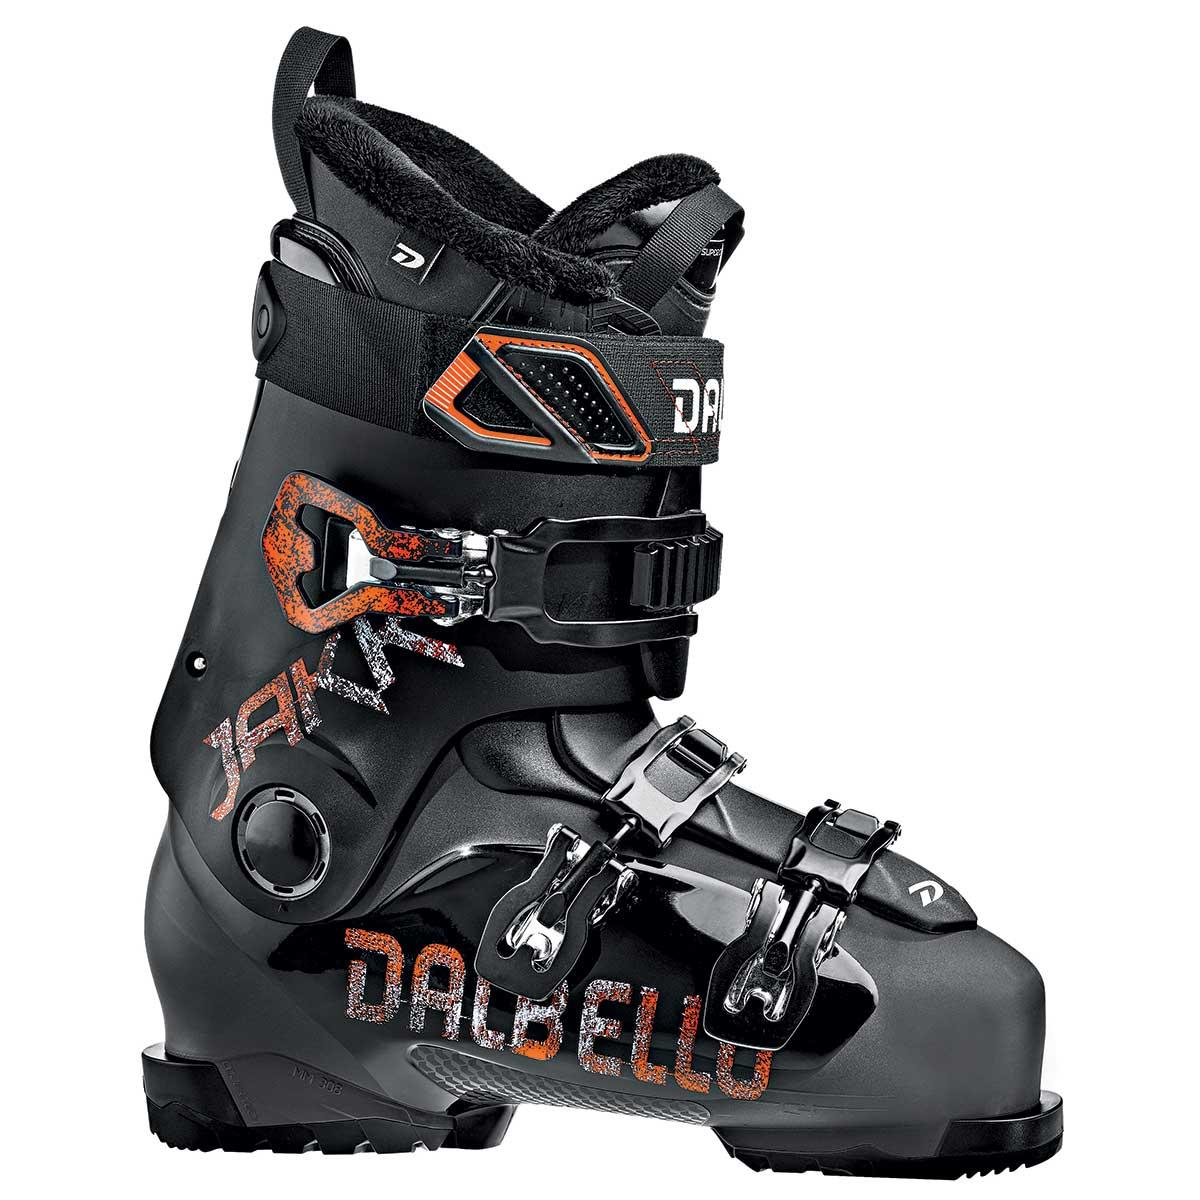 Dalbello Jakk junior ski boot in black and black